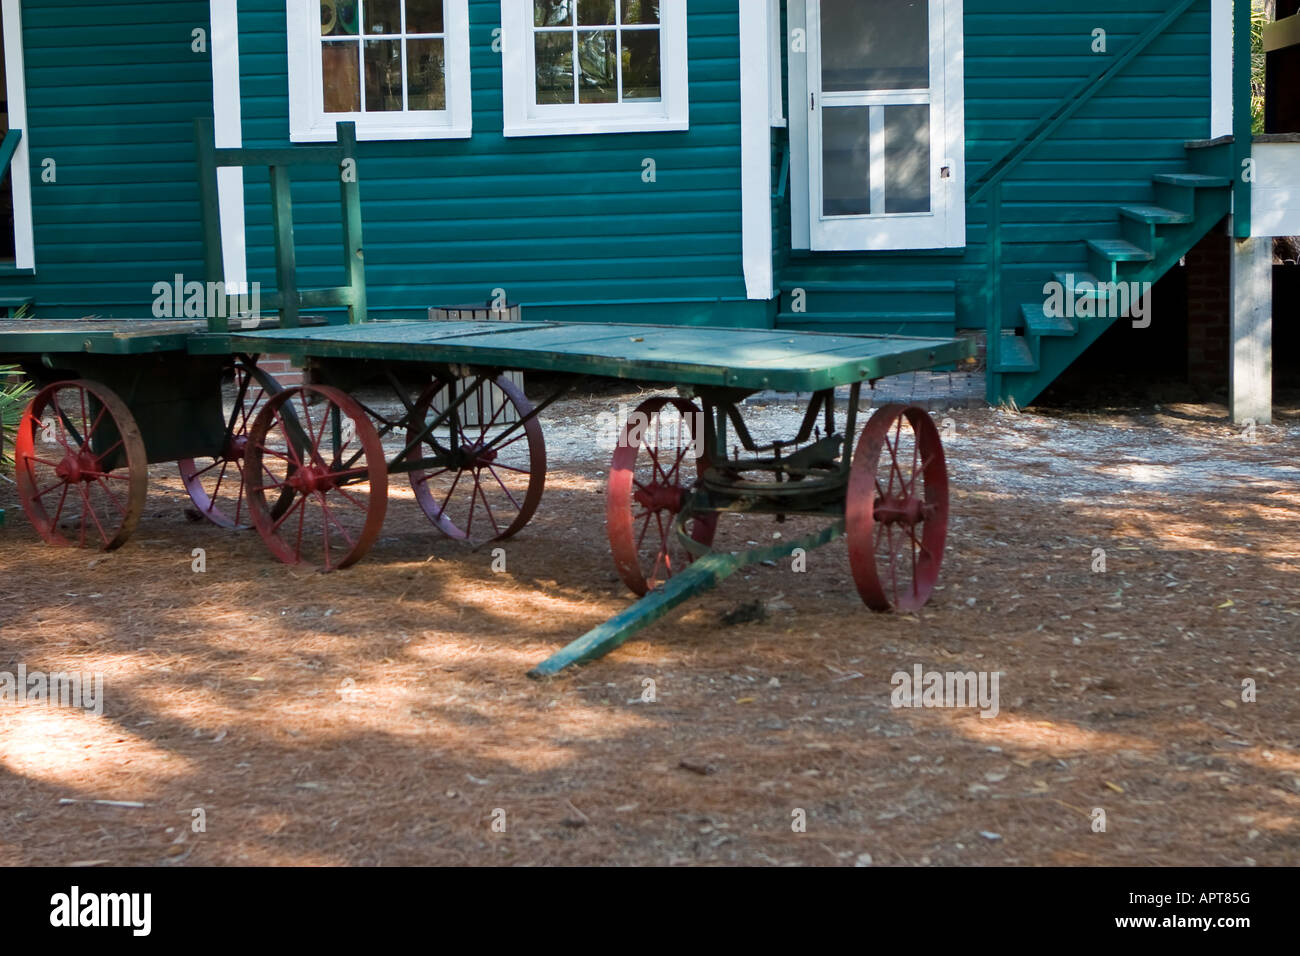 Mid to late 19th century train station baggage carts - Stock Image